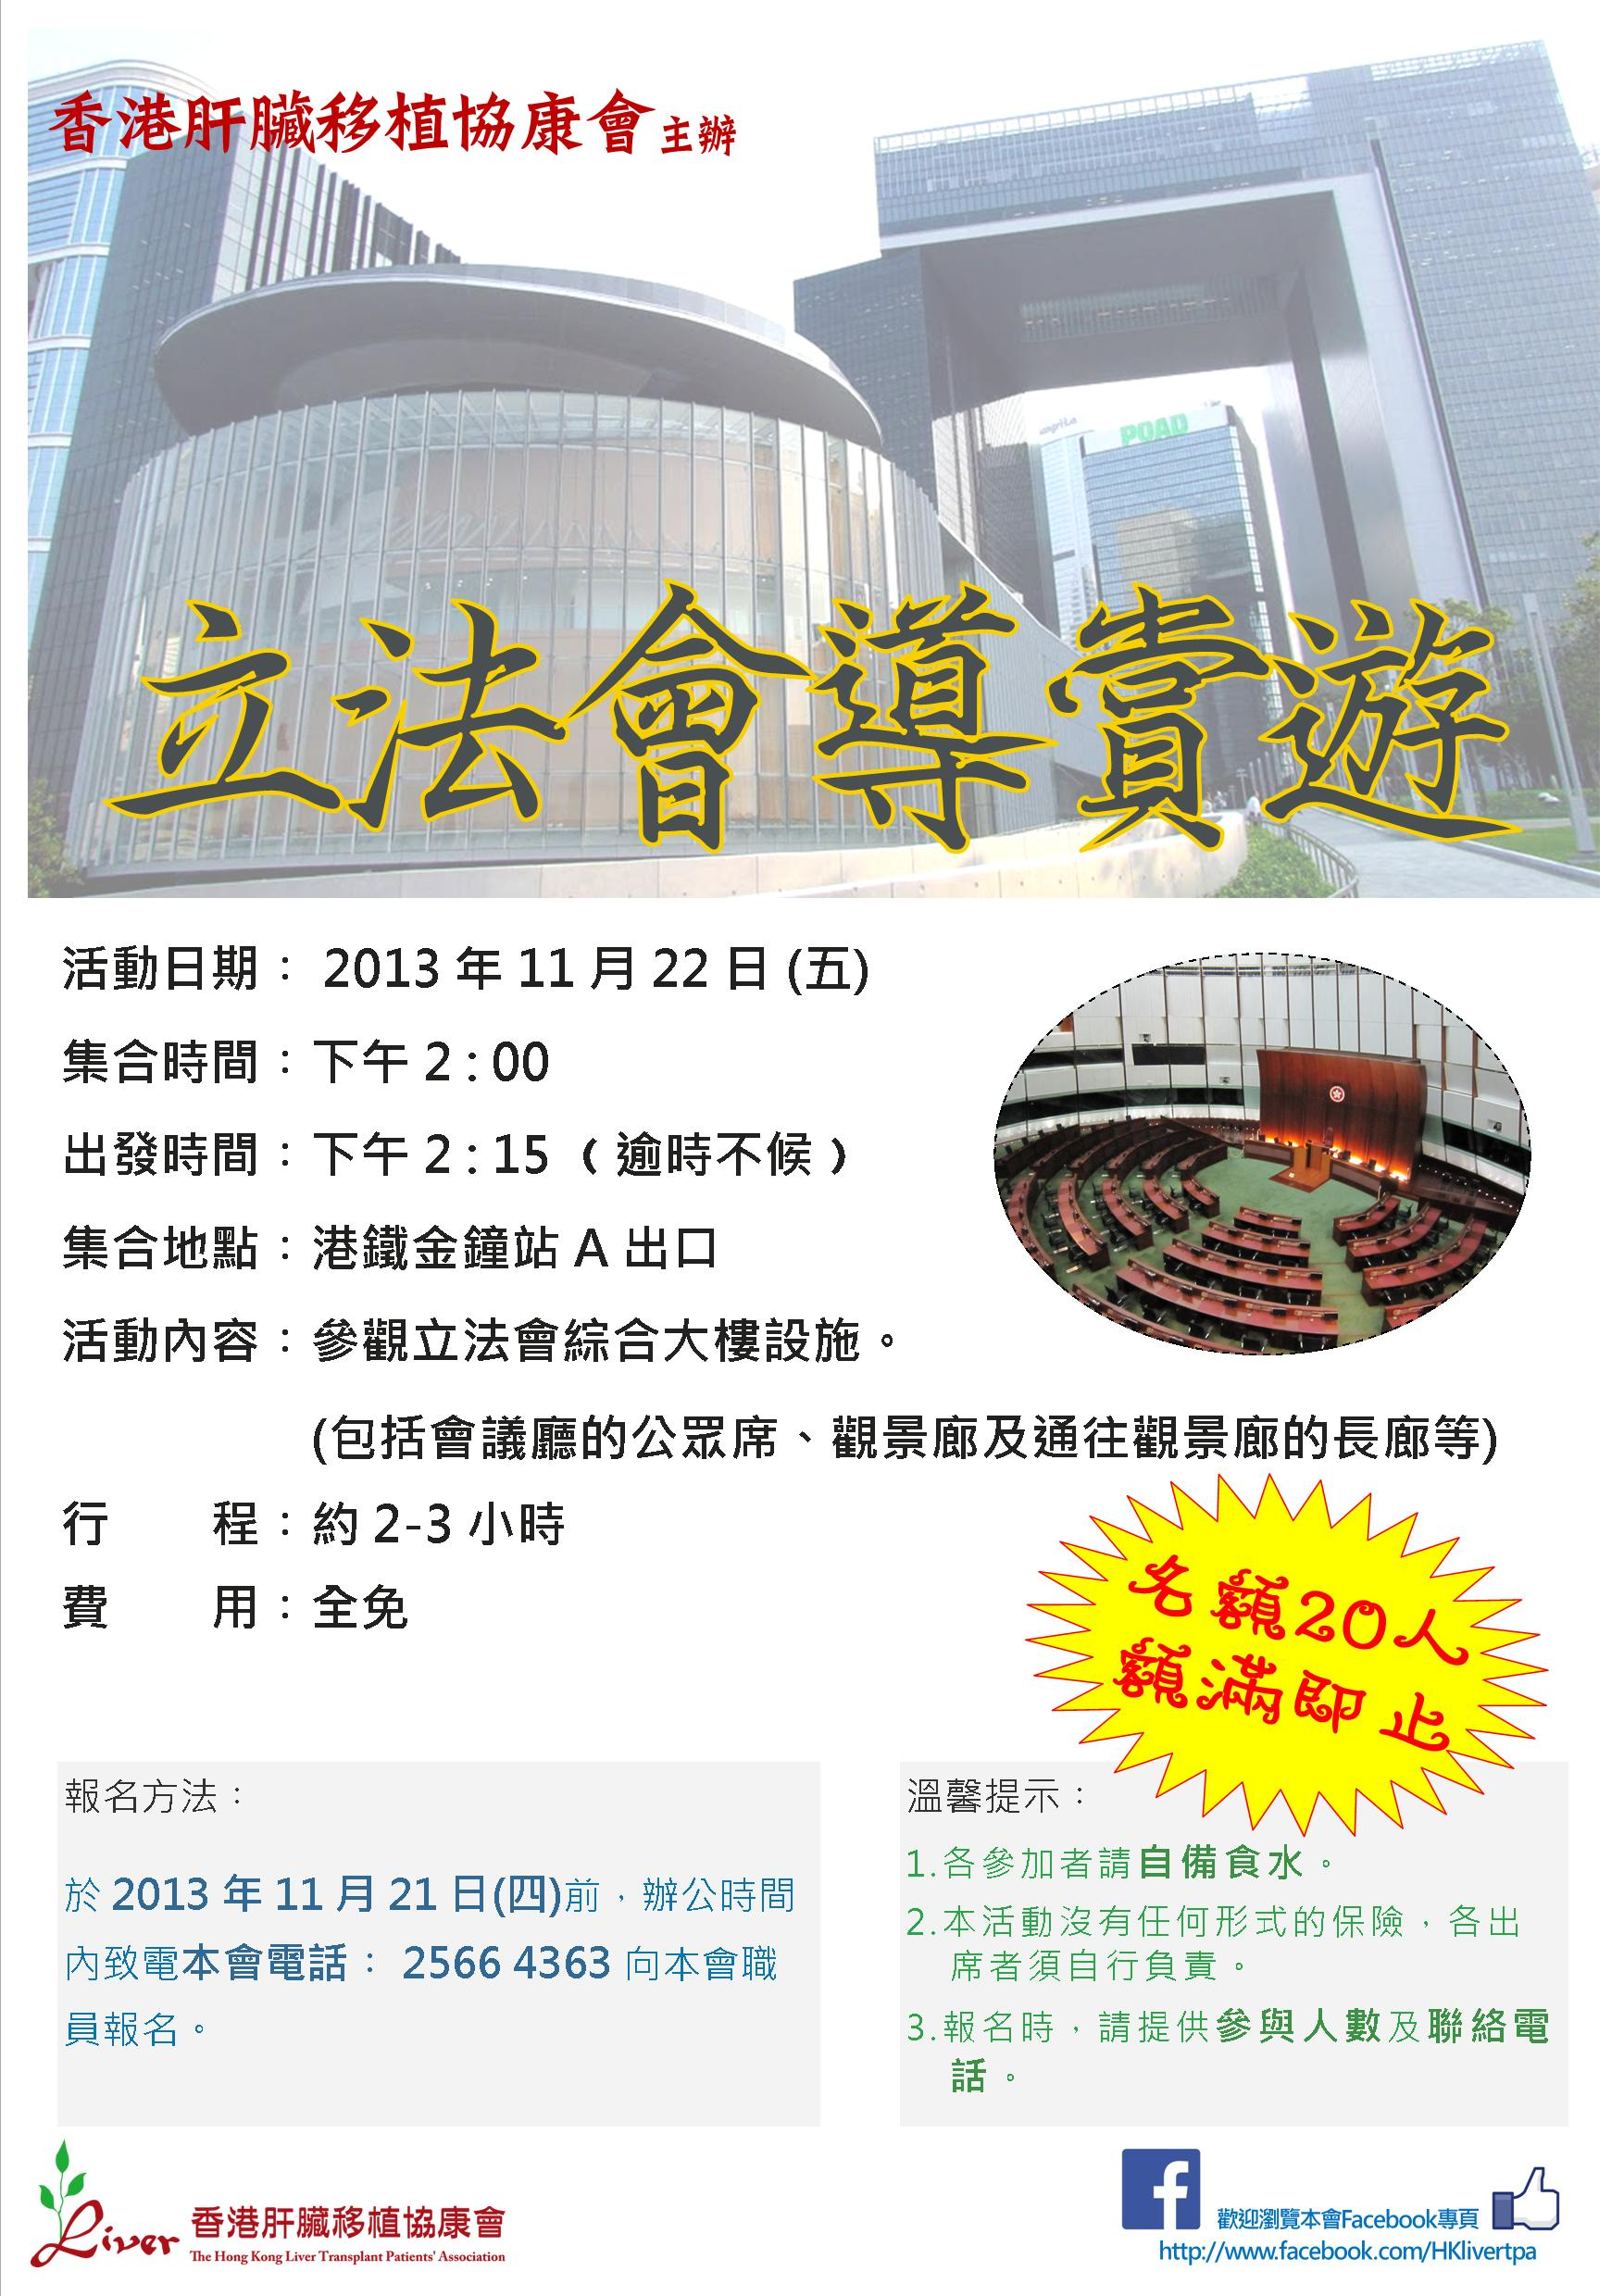 LegCo_Educational_Tour_poster